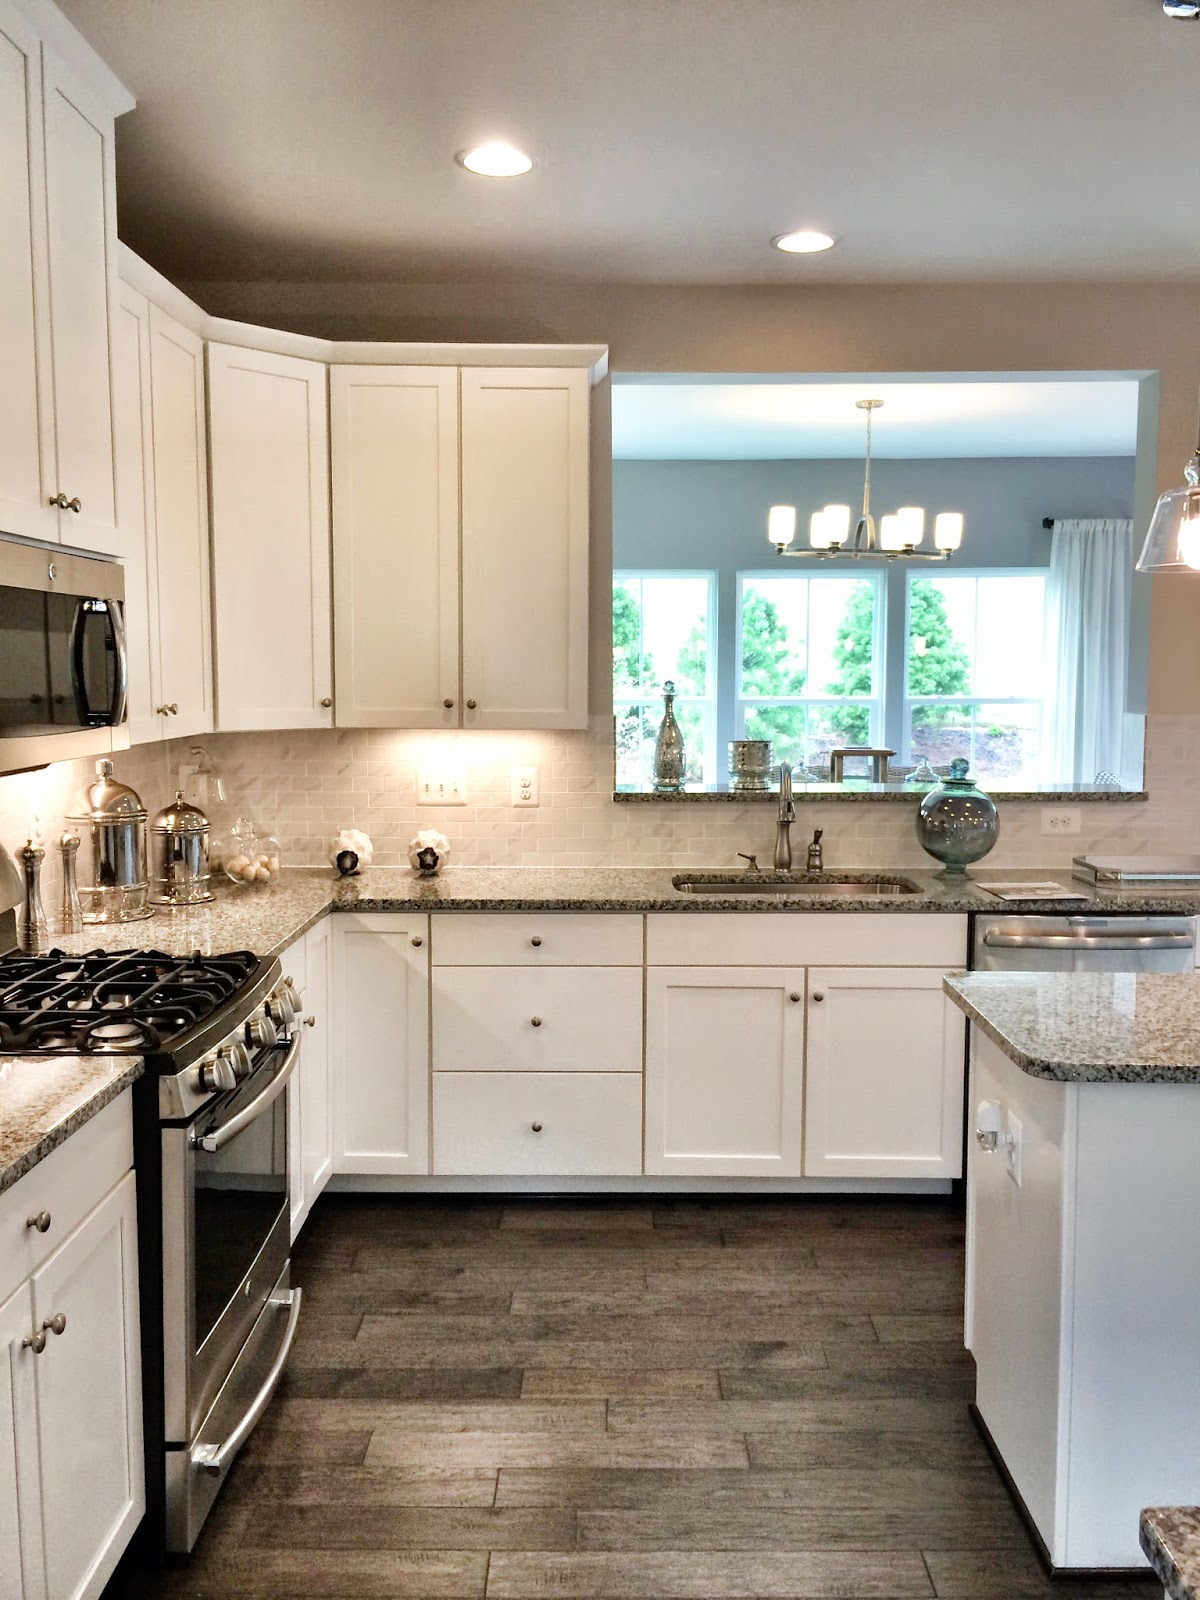 Kitchens In New Homes Summit Citrus 43 Spice A Sight For Forgetful Eyes Ryan Build